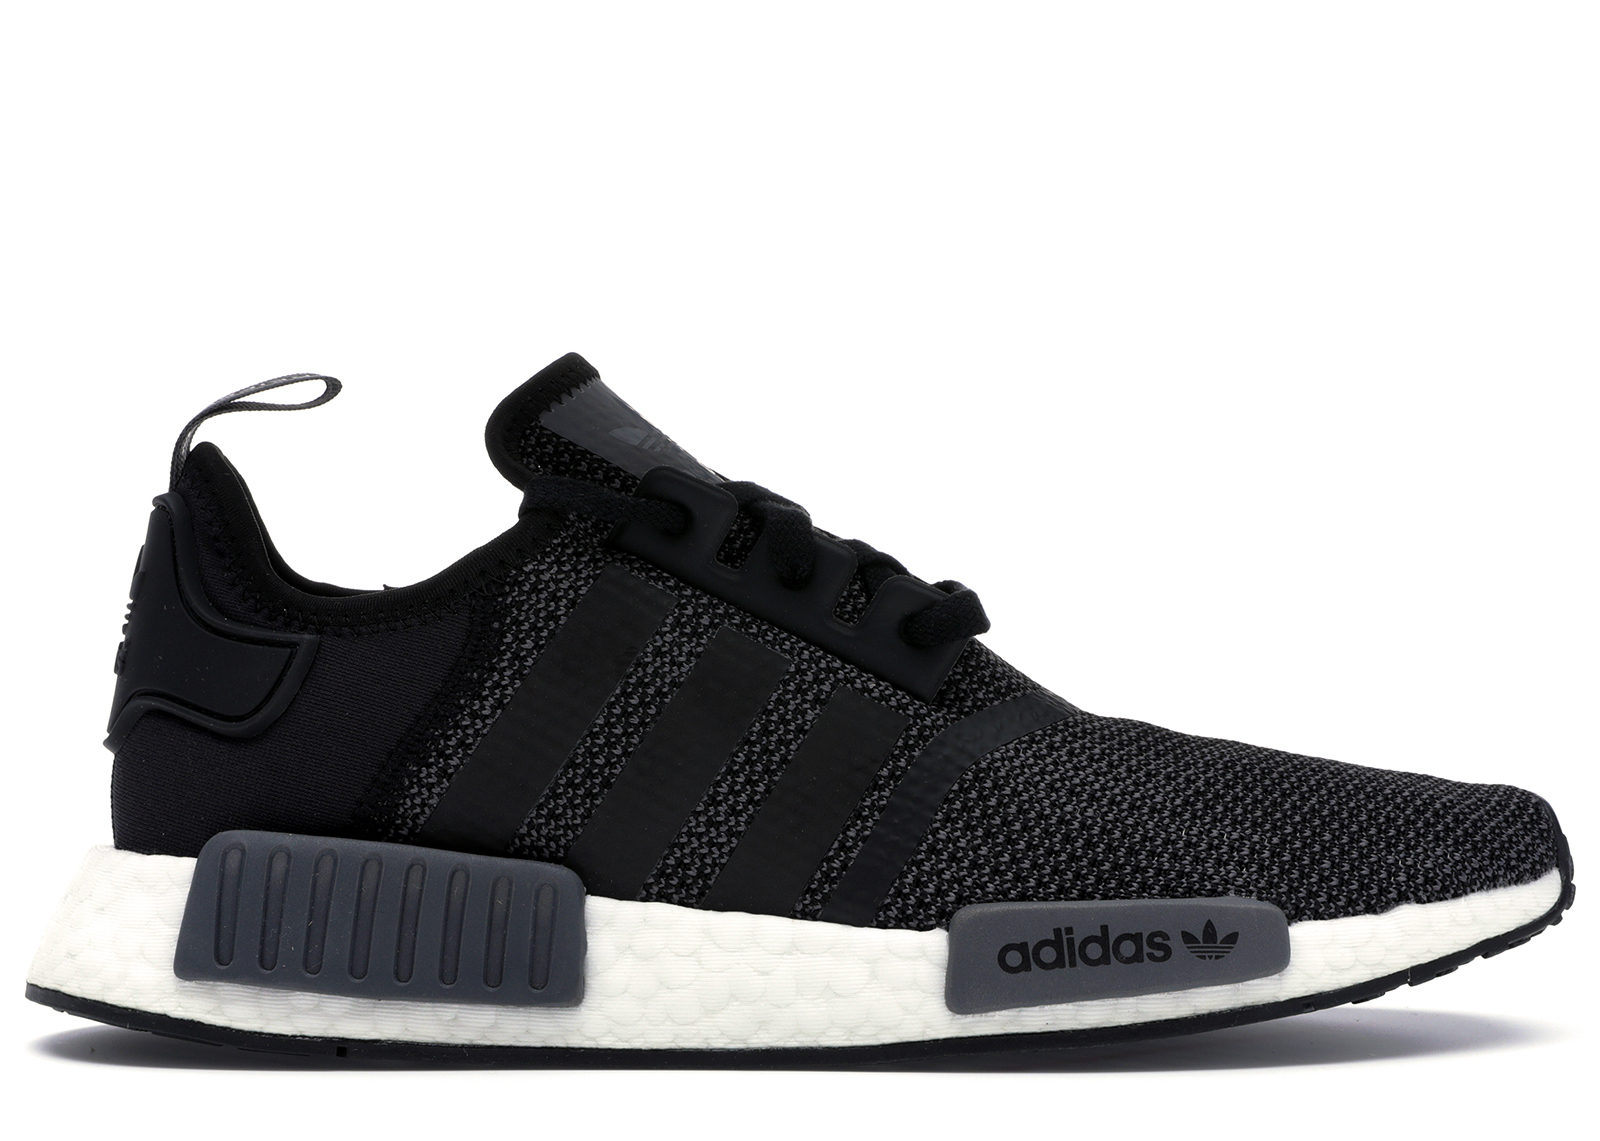 adidas NMD R1 Core Black Carbon - B79758